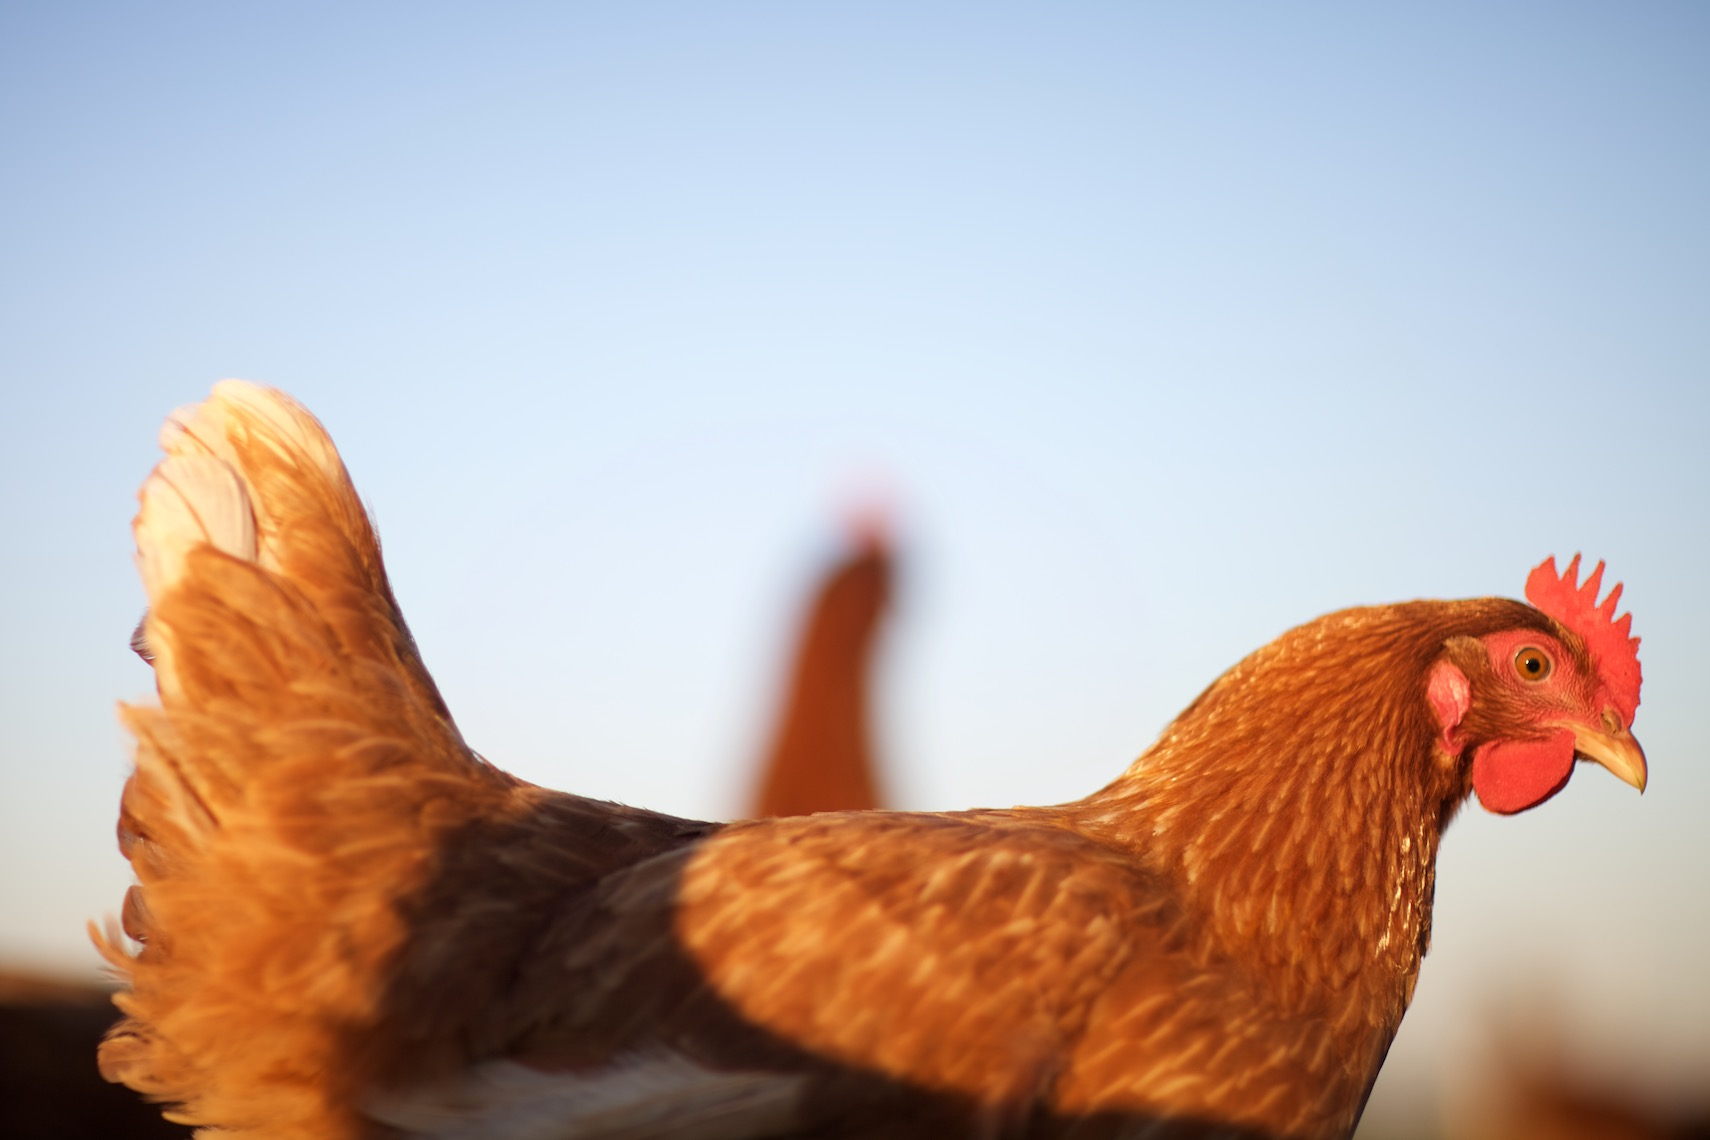 peeler-farms-chickens-texas-jason-risner-photography-1682